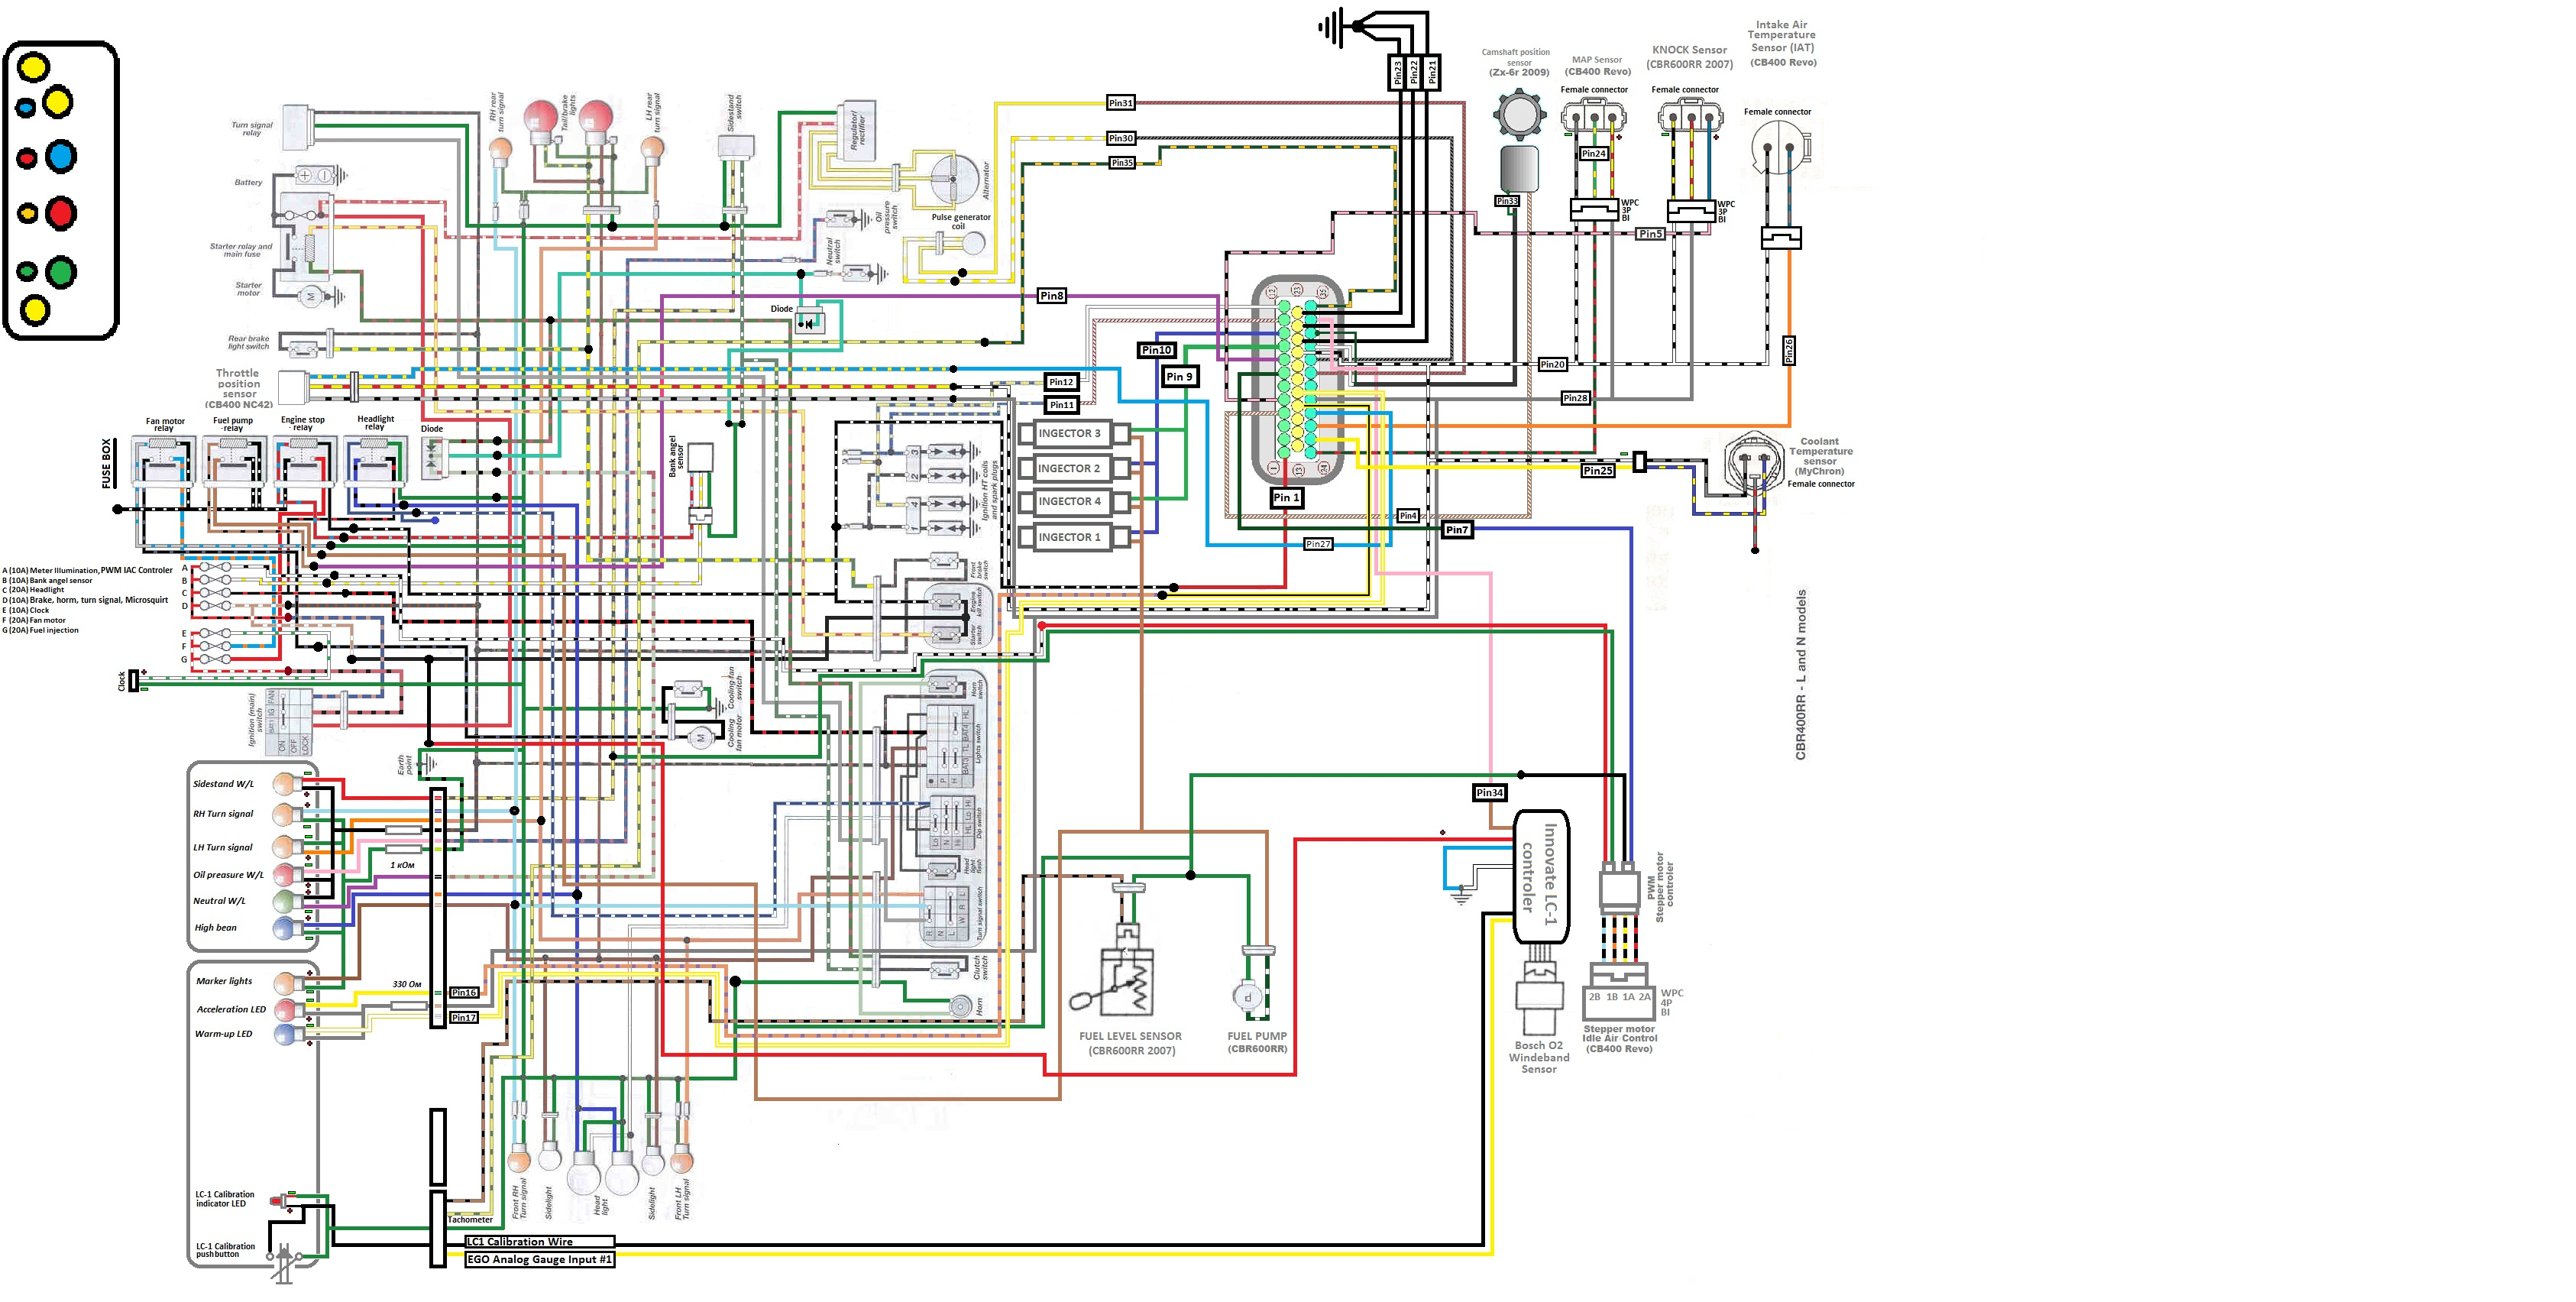 cbr wiring diagram detailed schematics diagram rh lelandlutheran com CBR 600 Motor honda cbr 125 engine diagram